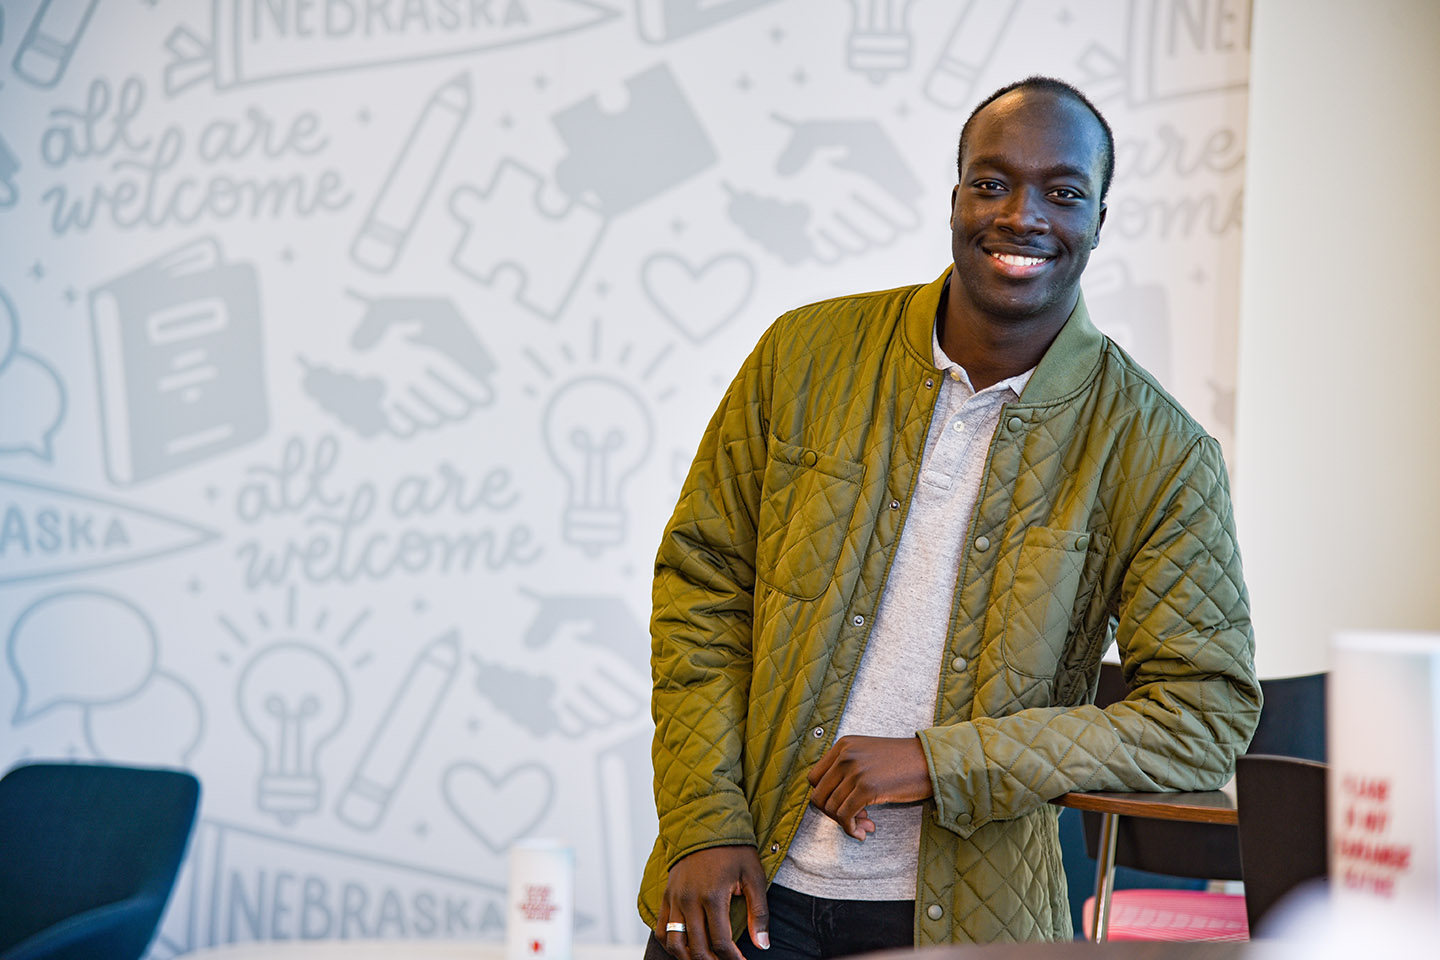 Ahmed Finds Inclusivity Through Accounting